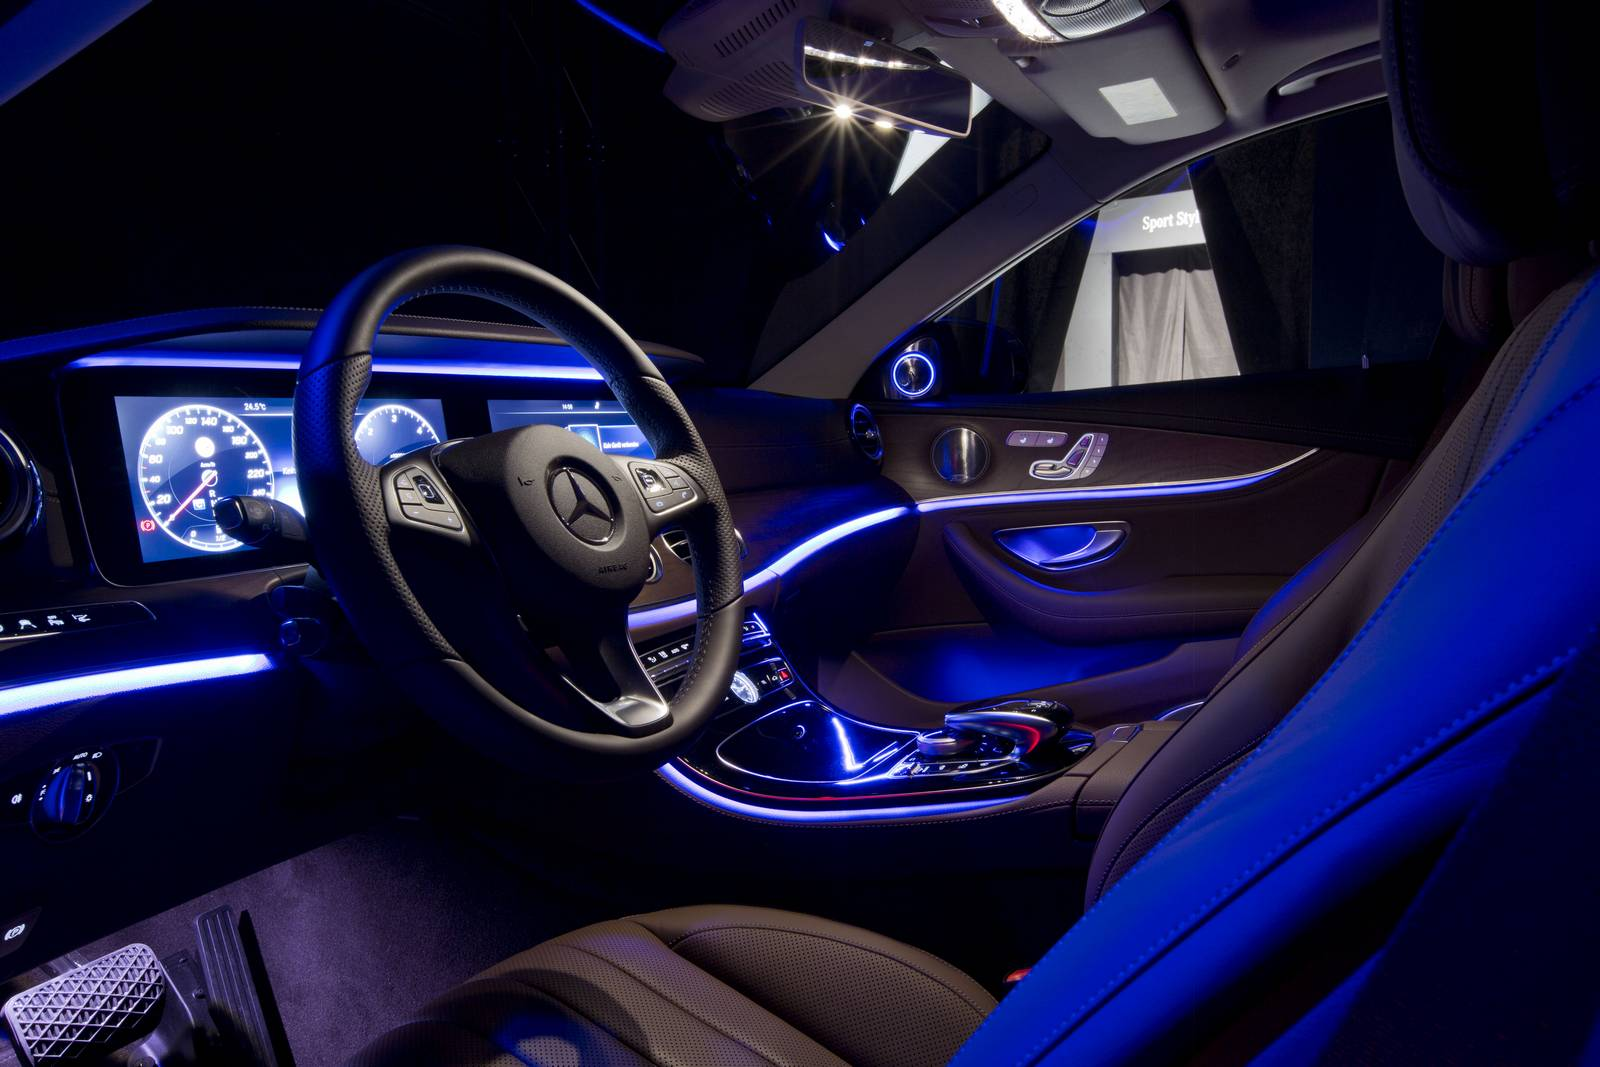 2017 Mercedes-Benz E-Class interior lighting